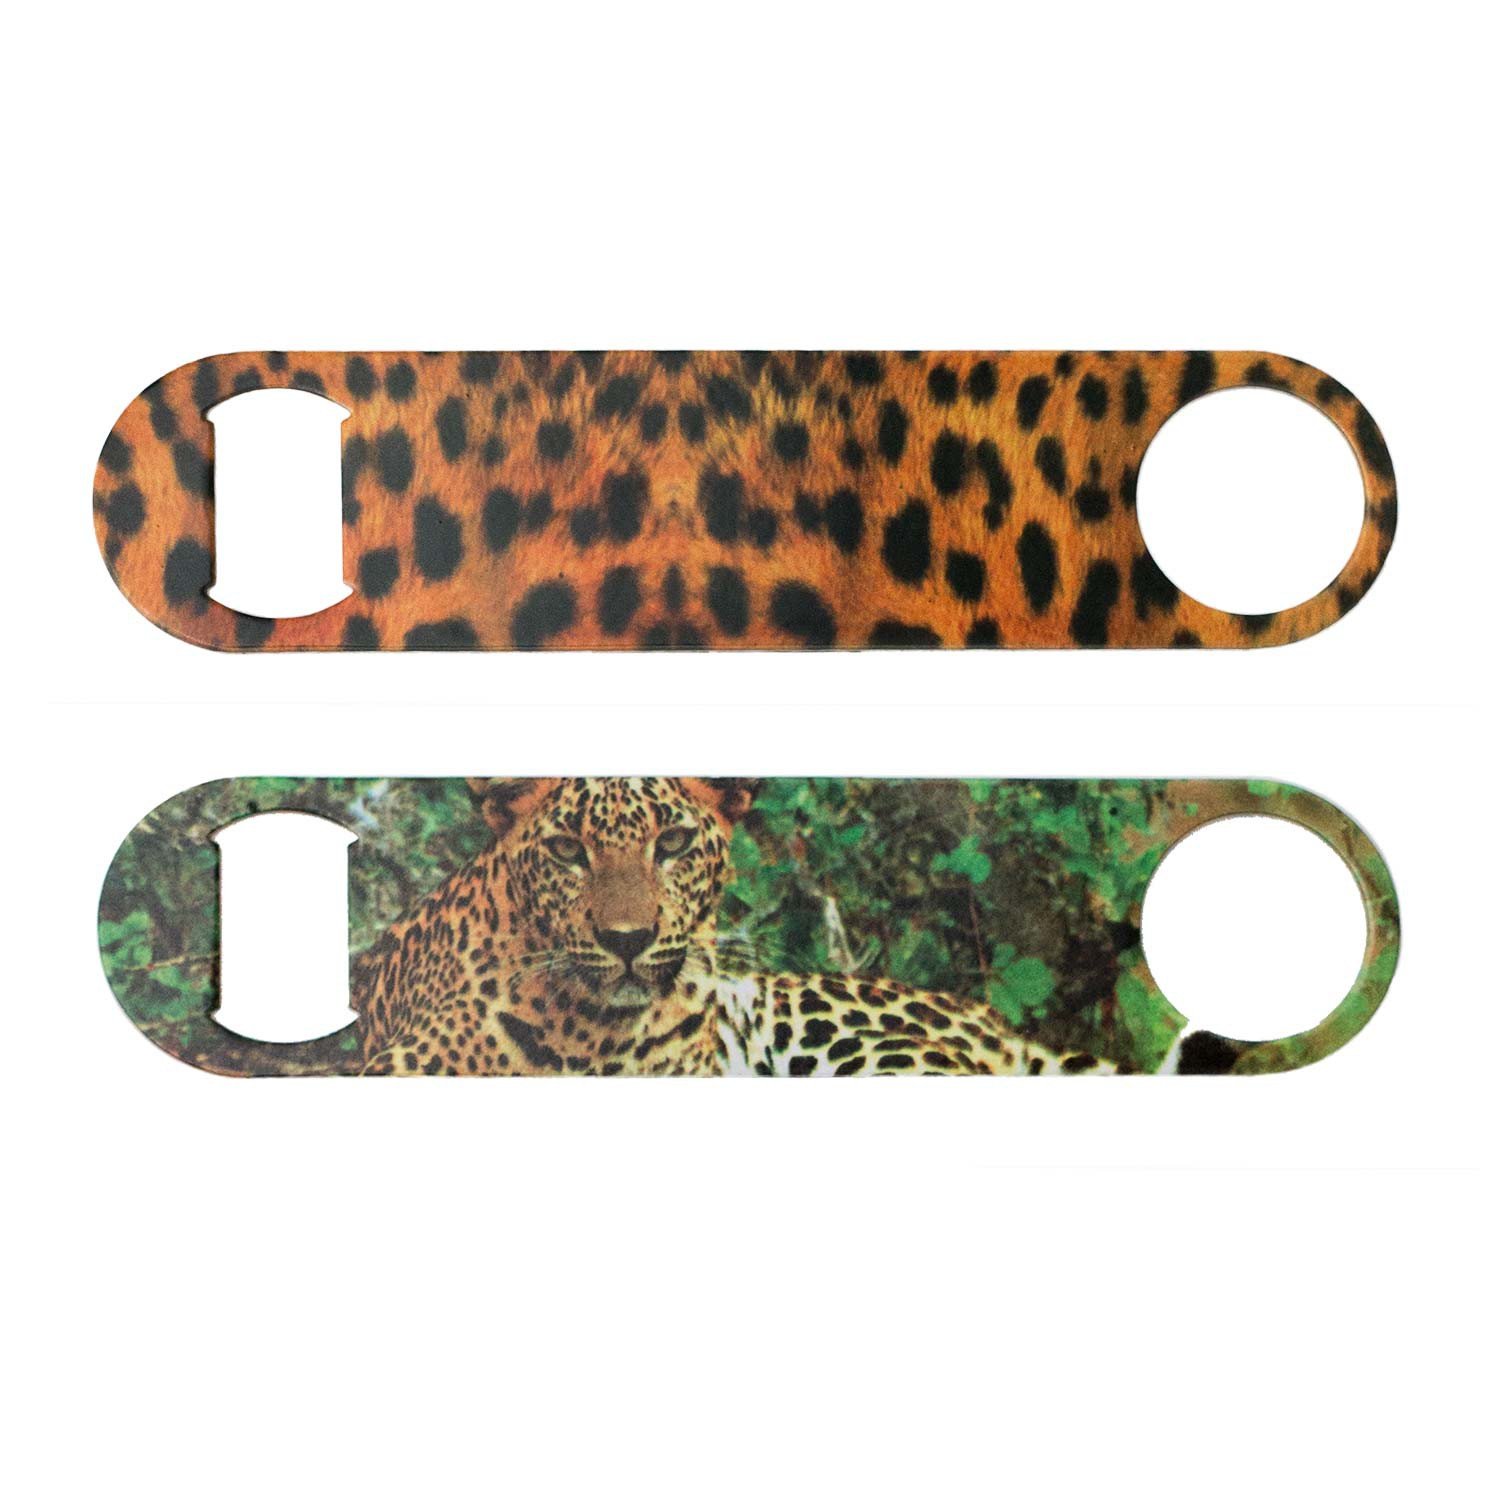 Leopard Print Bottle Opener